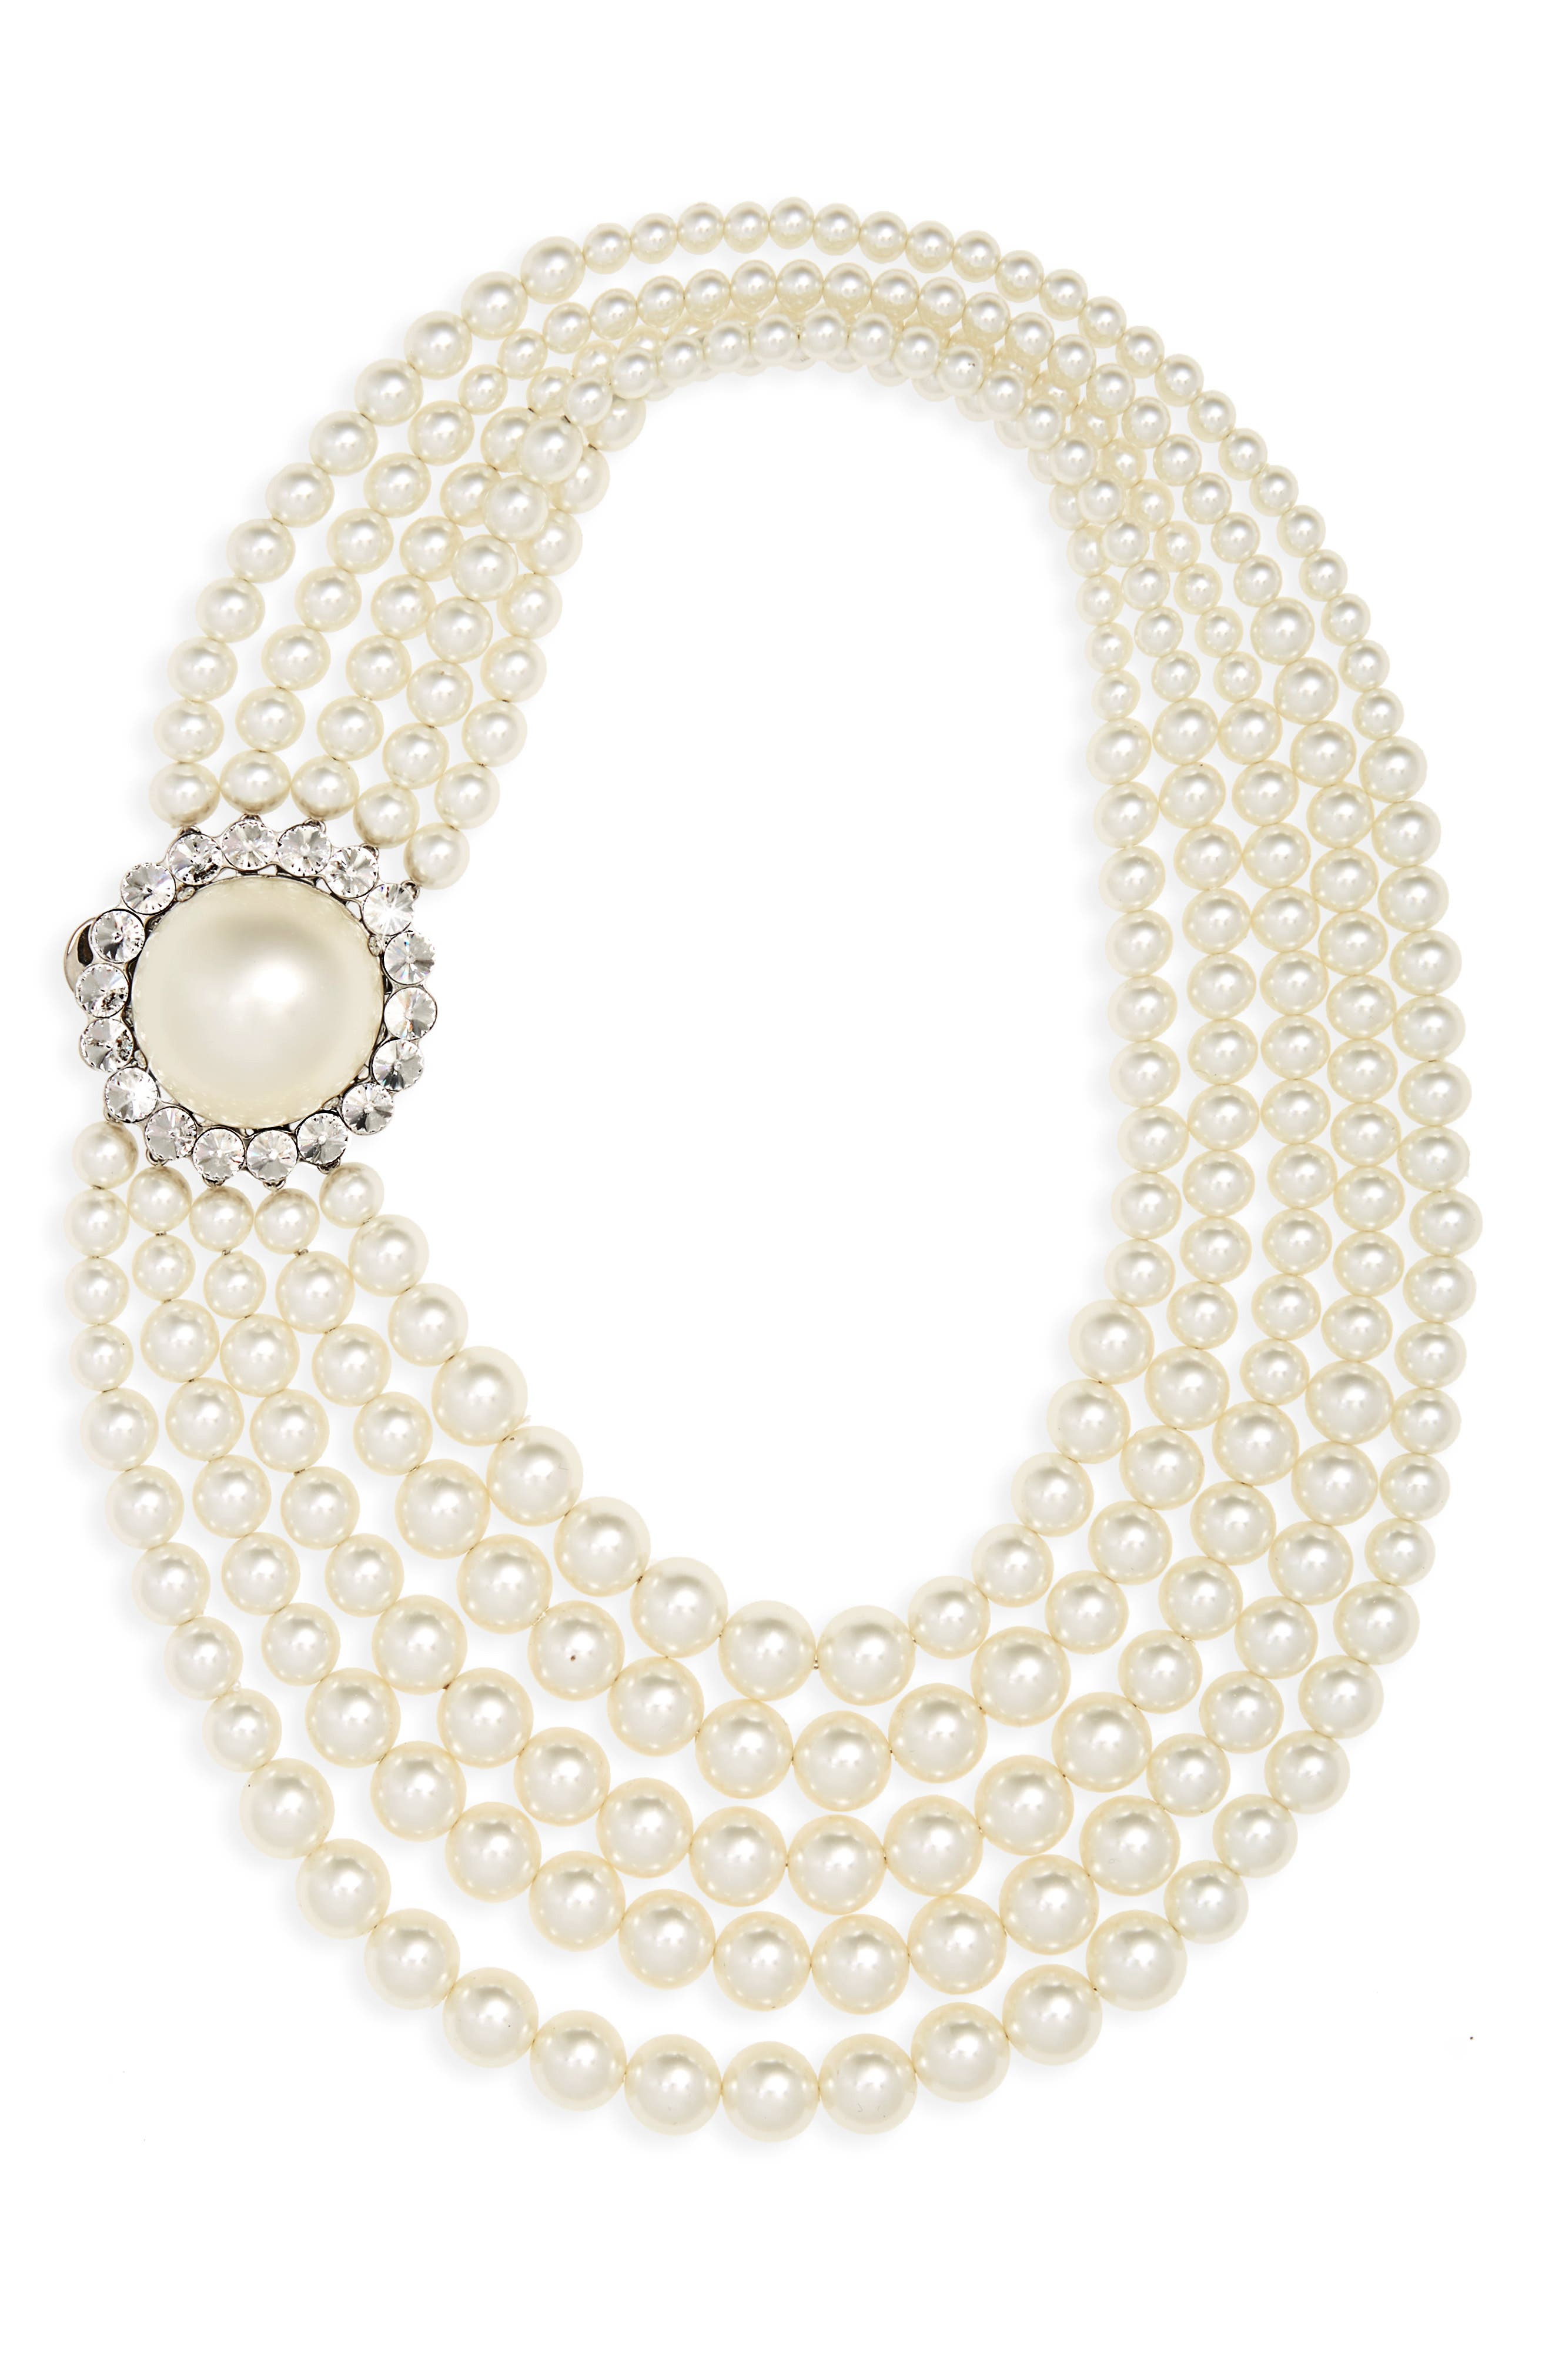 Multistrand Imitation Pearl Necklace,                             Main thumbnail 1, color,                             Pearl